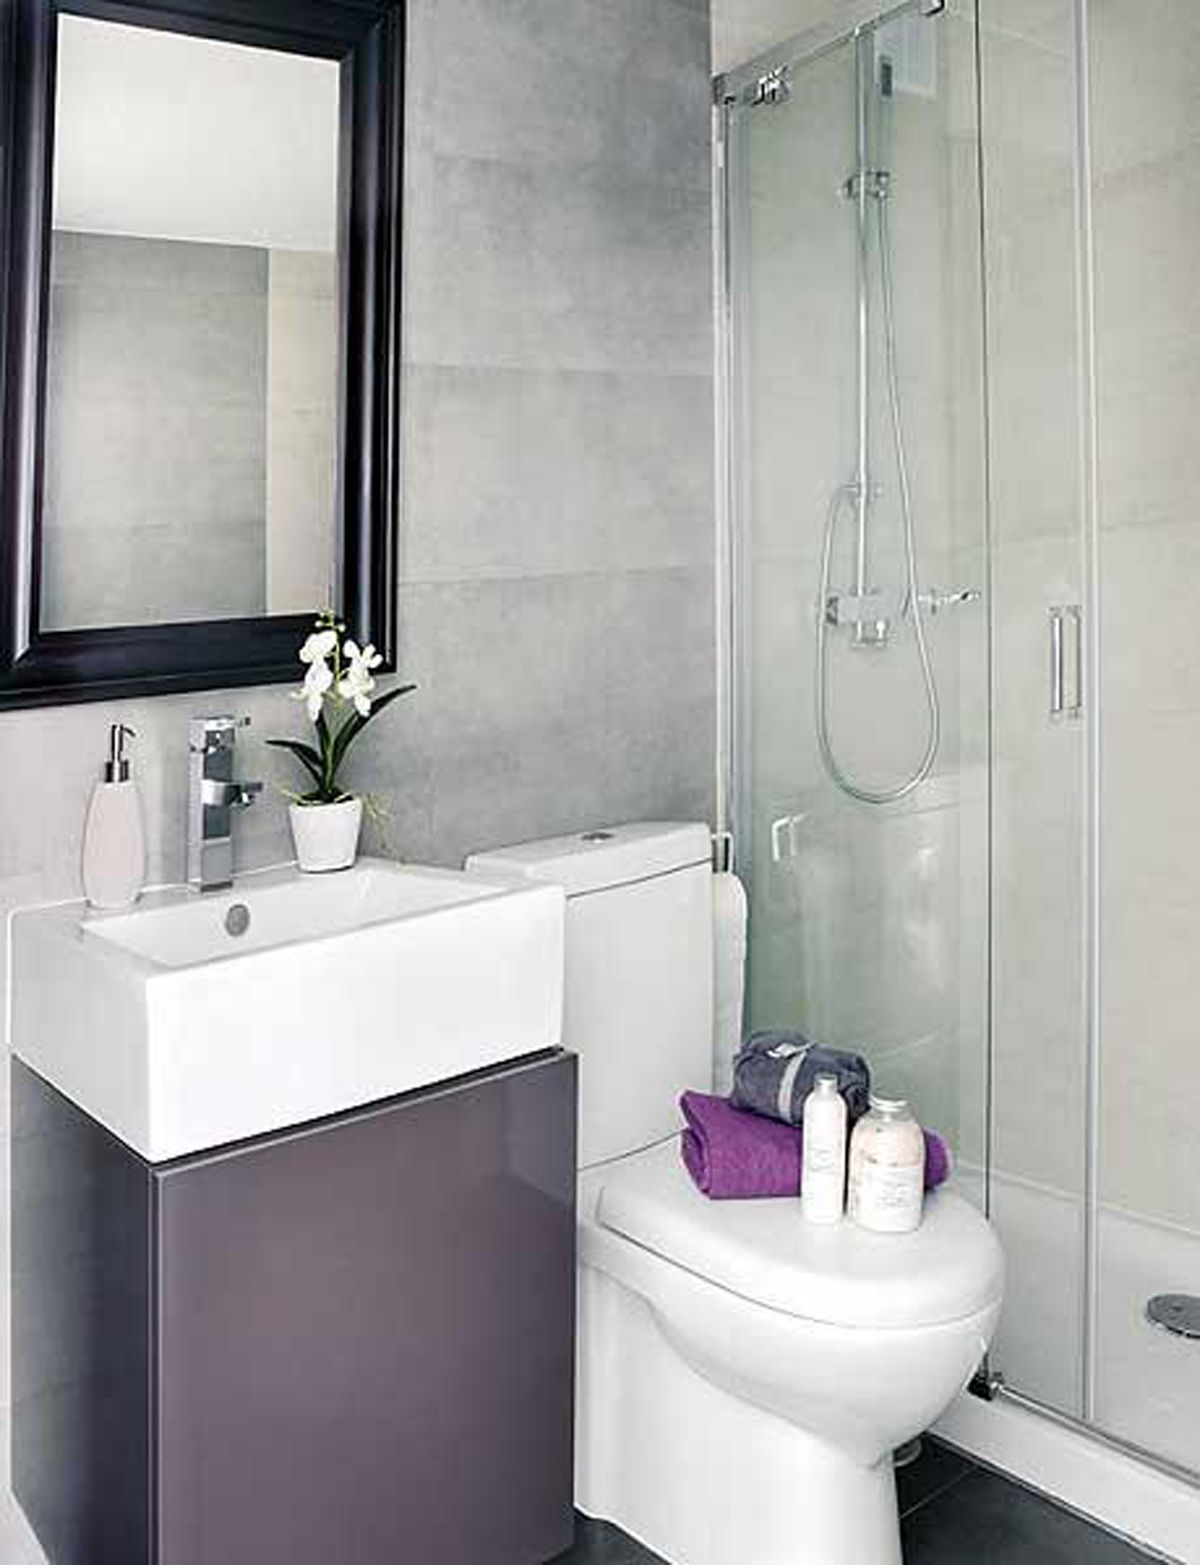 Small bathroom ideas - Intrinsic Interior Design Applied In Small Apartment Architecture Luxtica Comluxtica Com